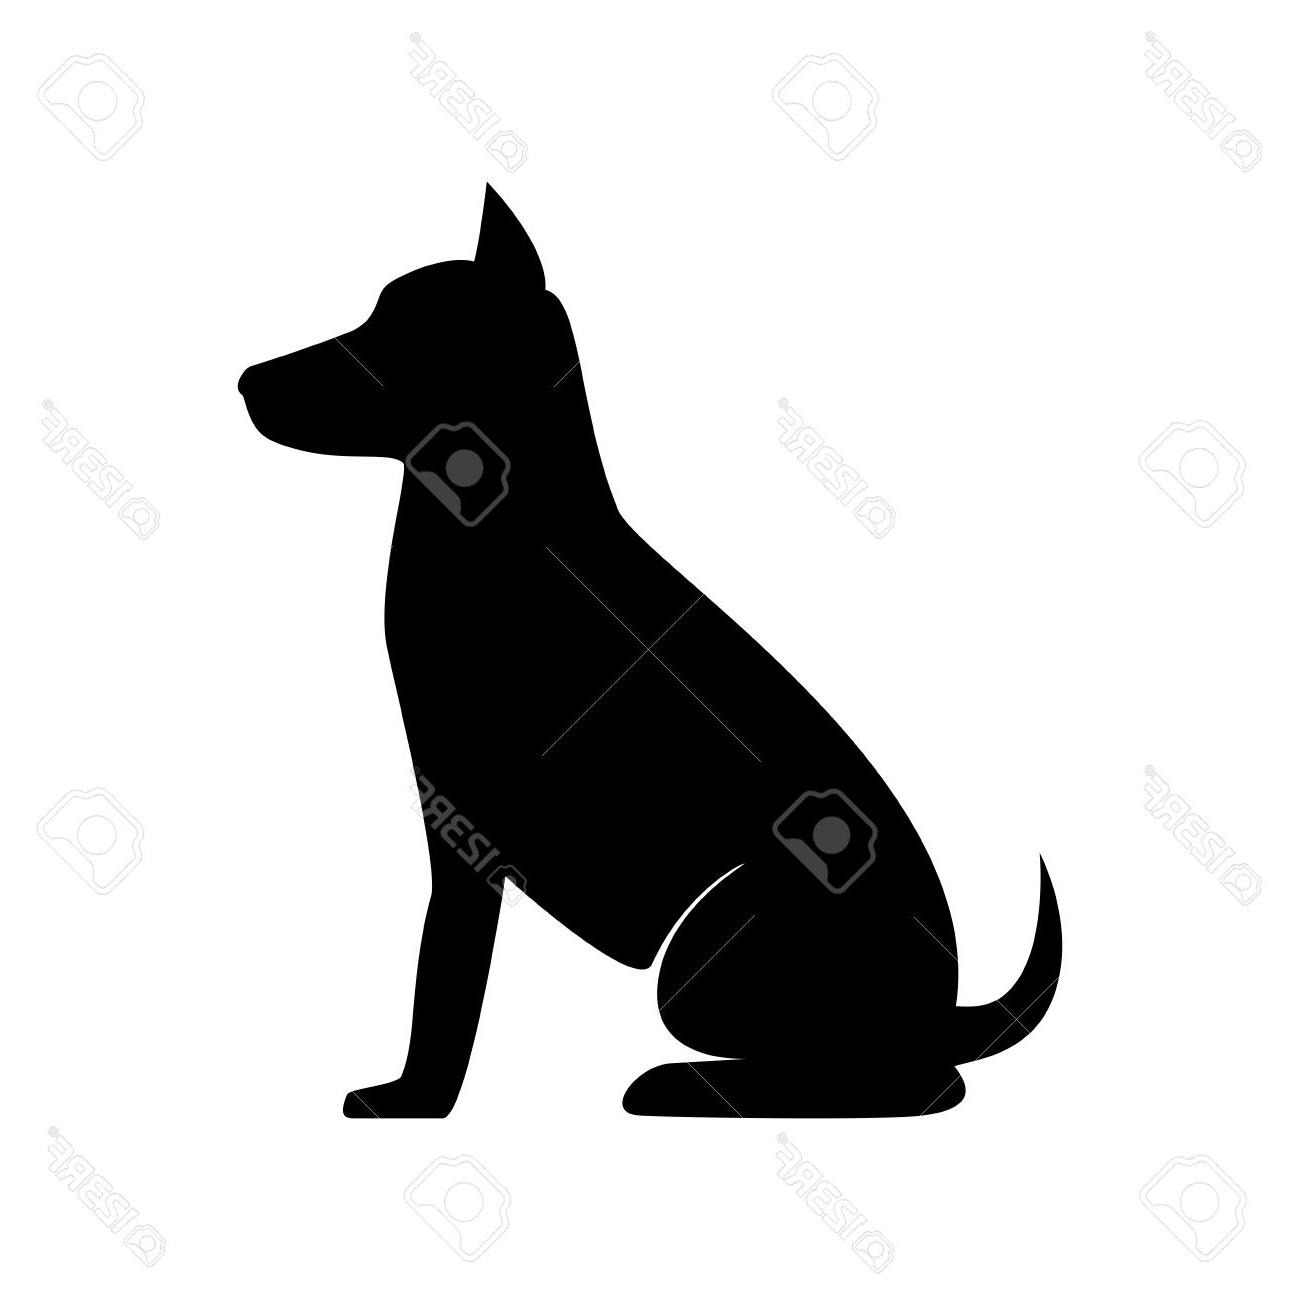 Top Dog Sit Pet Canine Animal Puppy Mascot Silhouette Vector